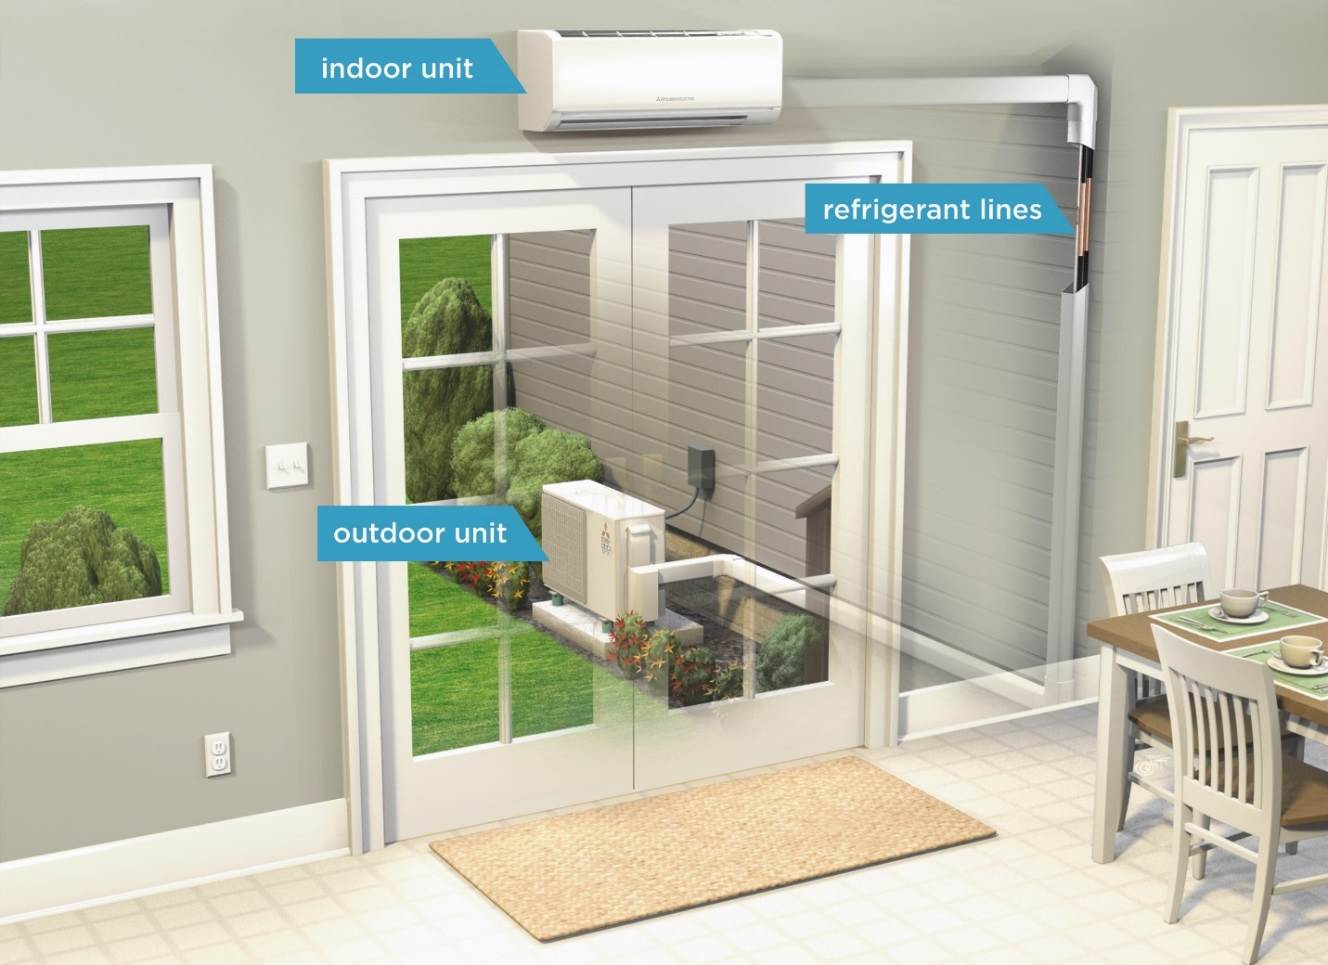 Ductless Heating Cooling Mini Split Systems Energy Star System Heat Pump Wiring Diagram